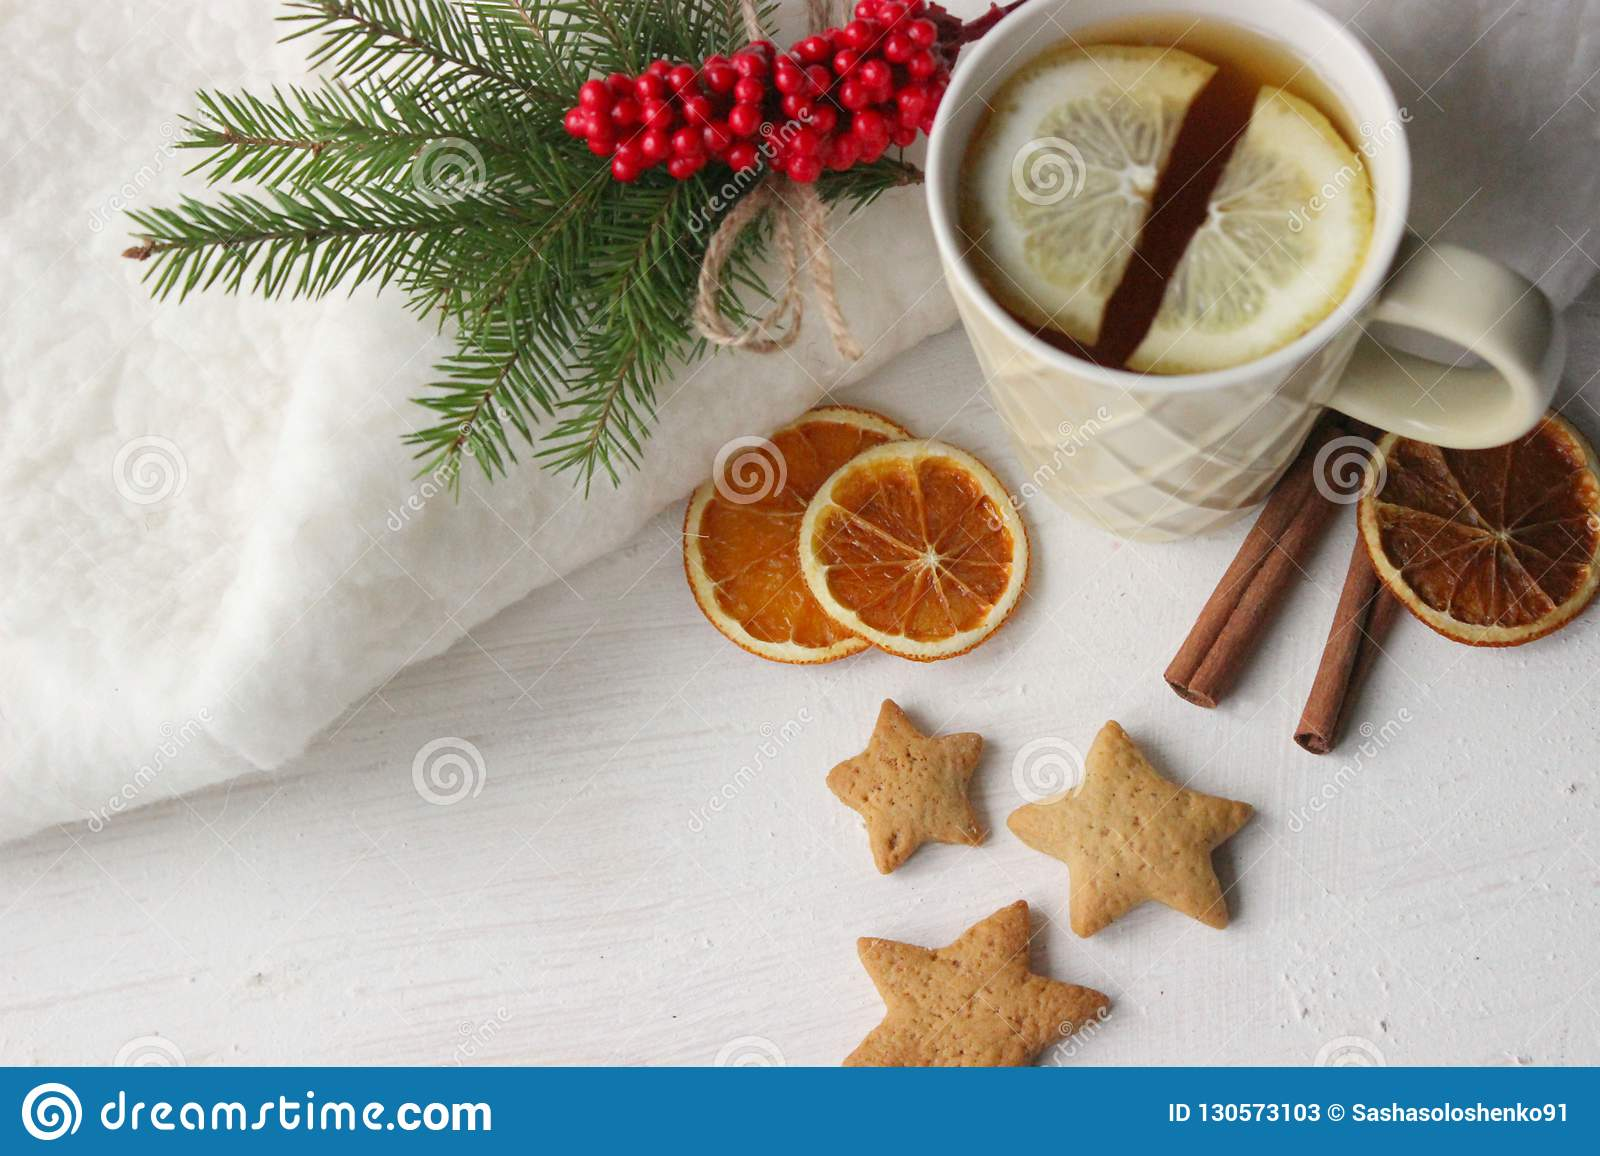 A Cup Of Tea With Lemon On The Table Close Up Surrounded By